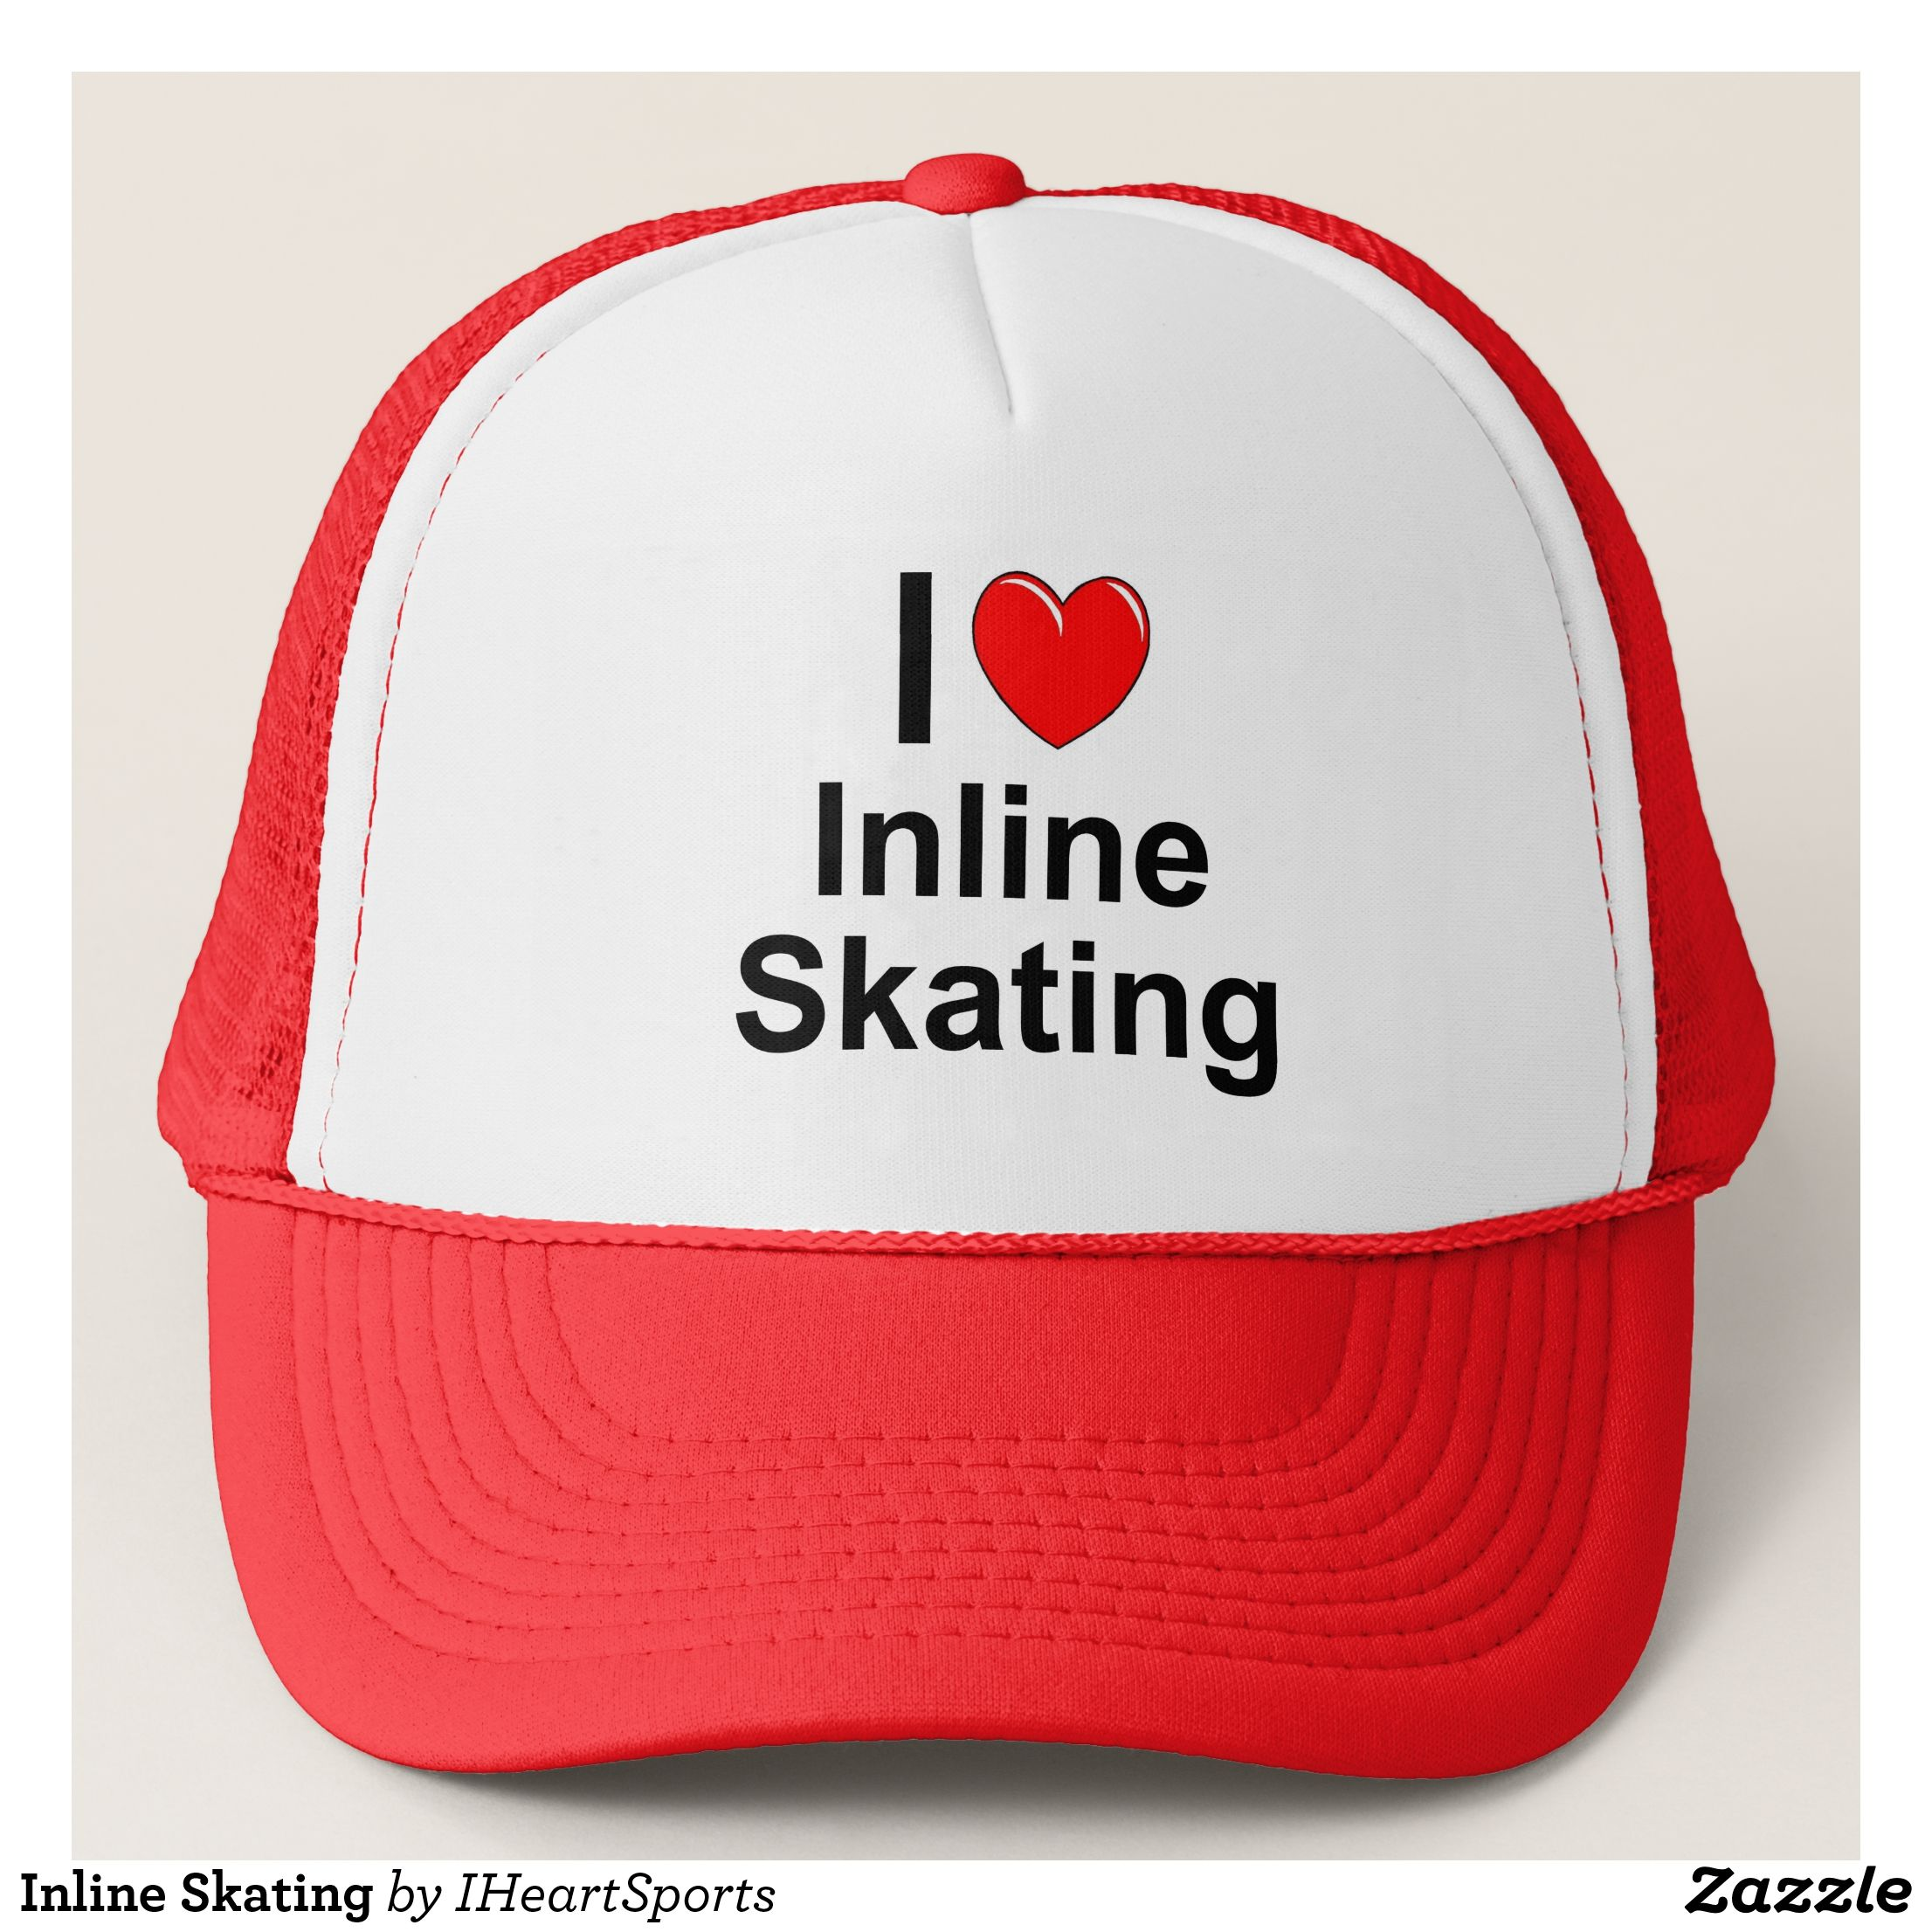 082ebe34326 Inline Skating Trucker Hat - Fashionable Urban And Outdoor Hunter Farmer Trucker  Hats By Creative Talented Graphic Designers -  hats  truckerhats  …